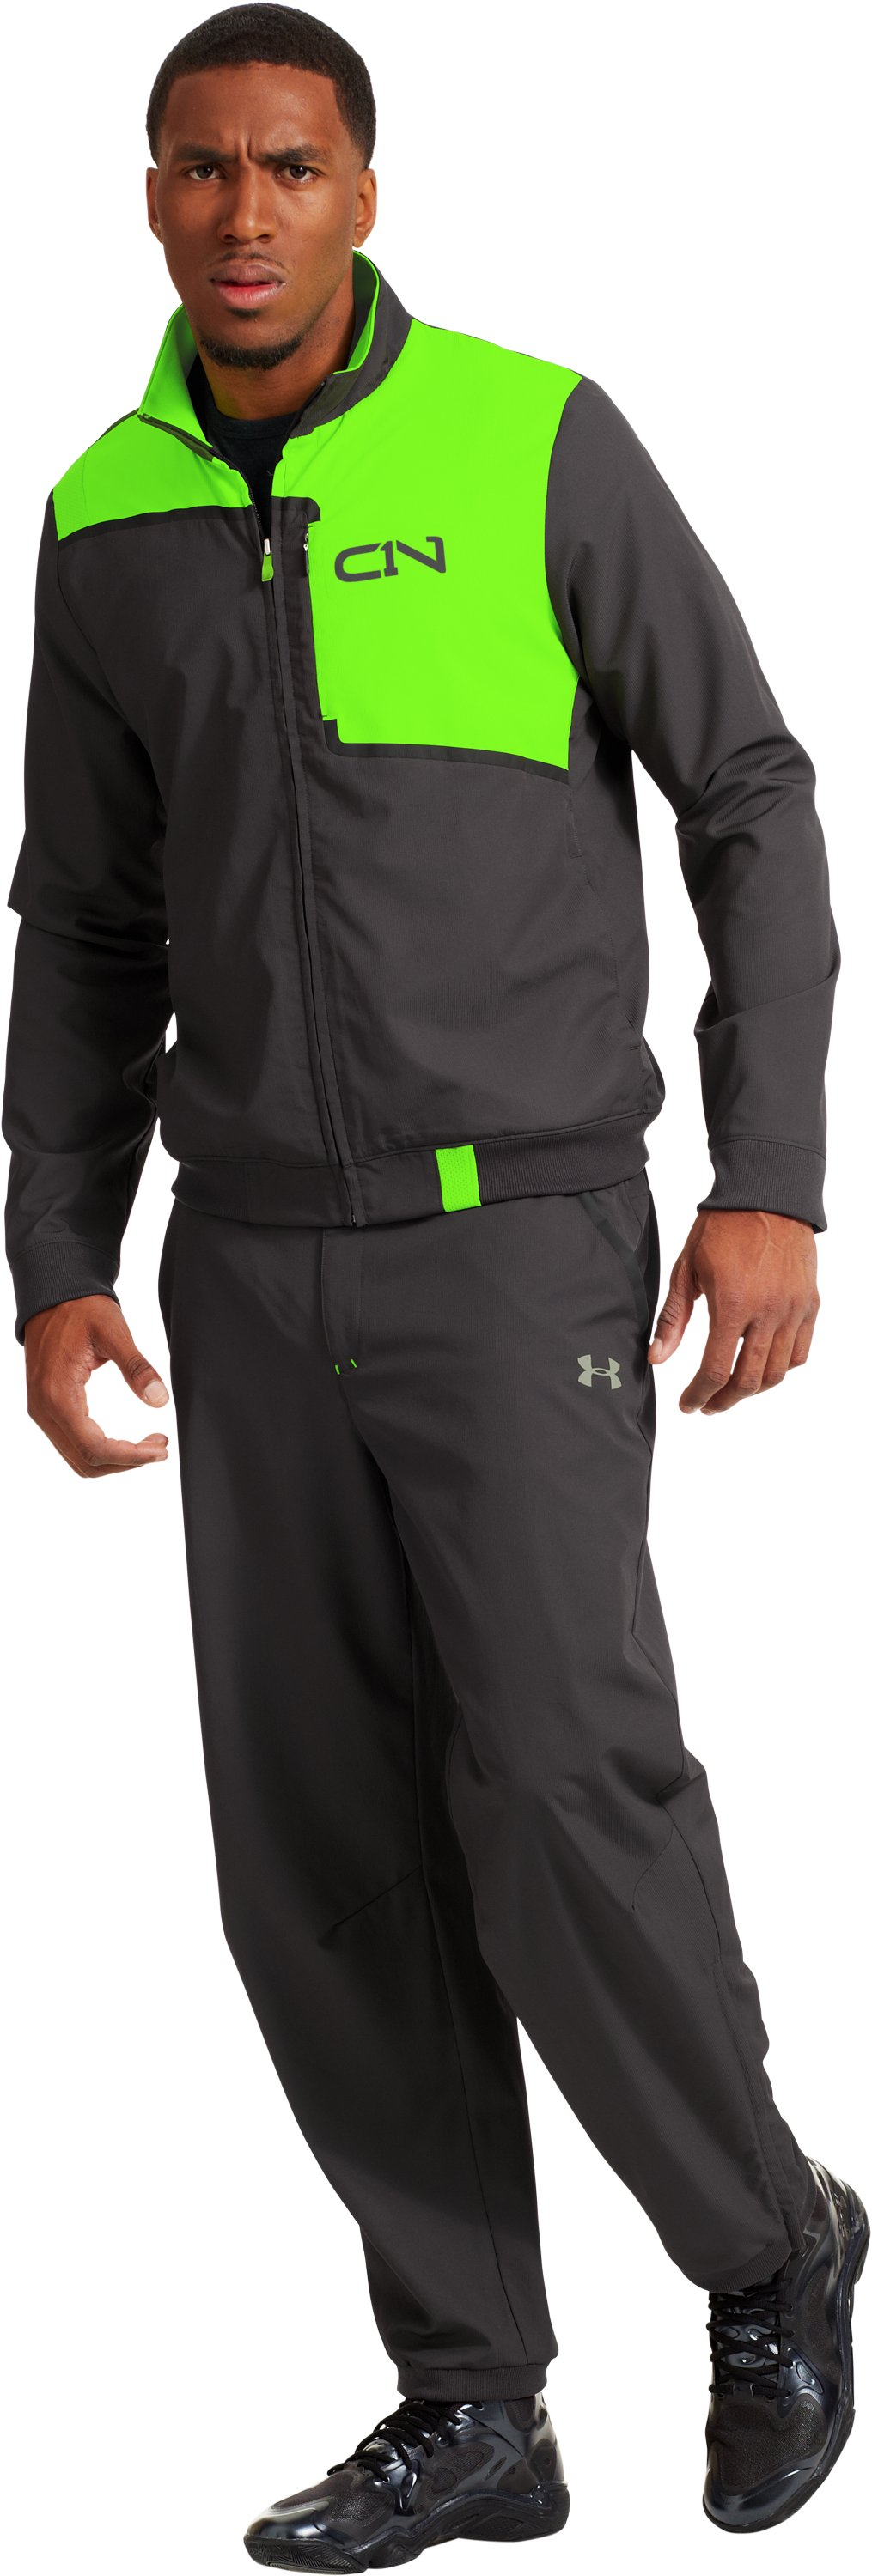 Men's C1N A.K.A. Warm-Up Jacket, HYPER GREEN, Front